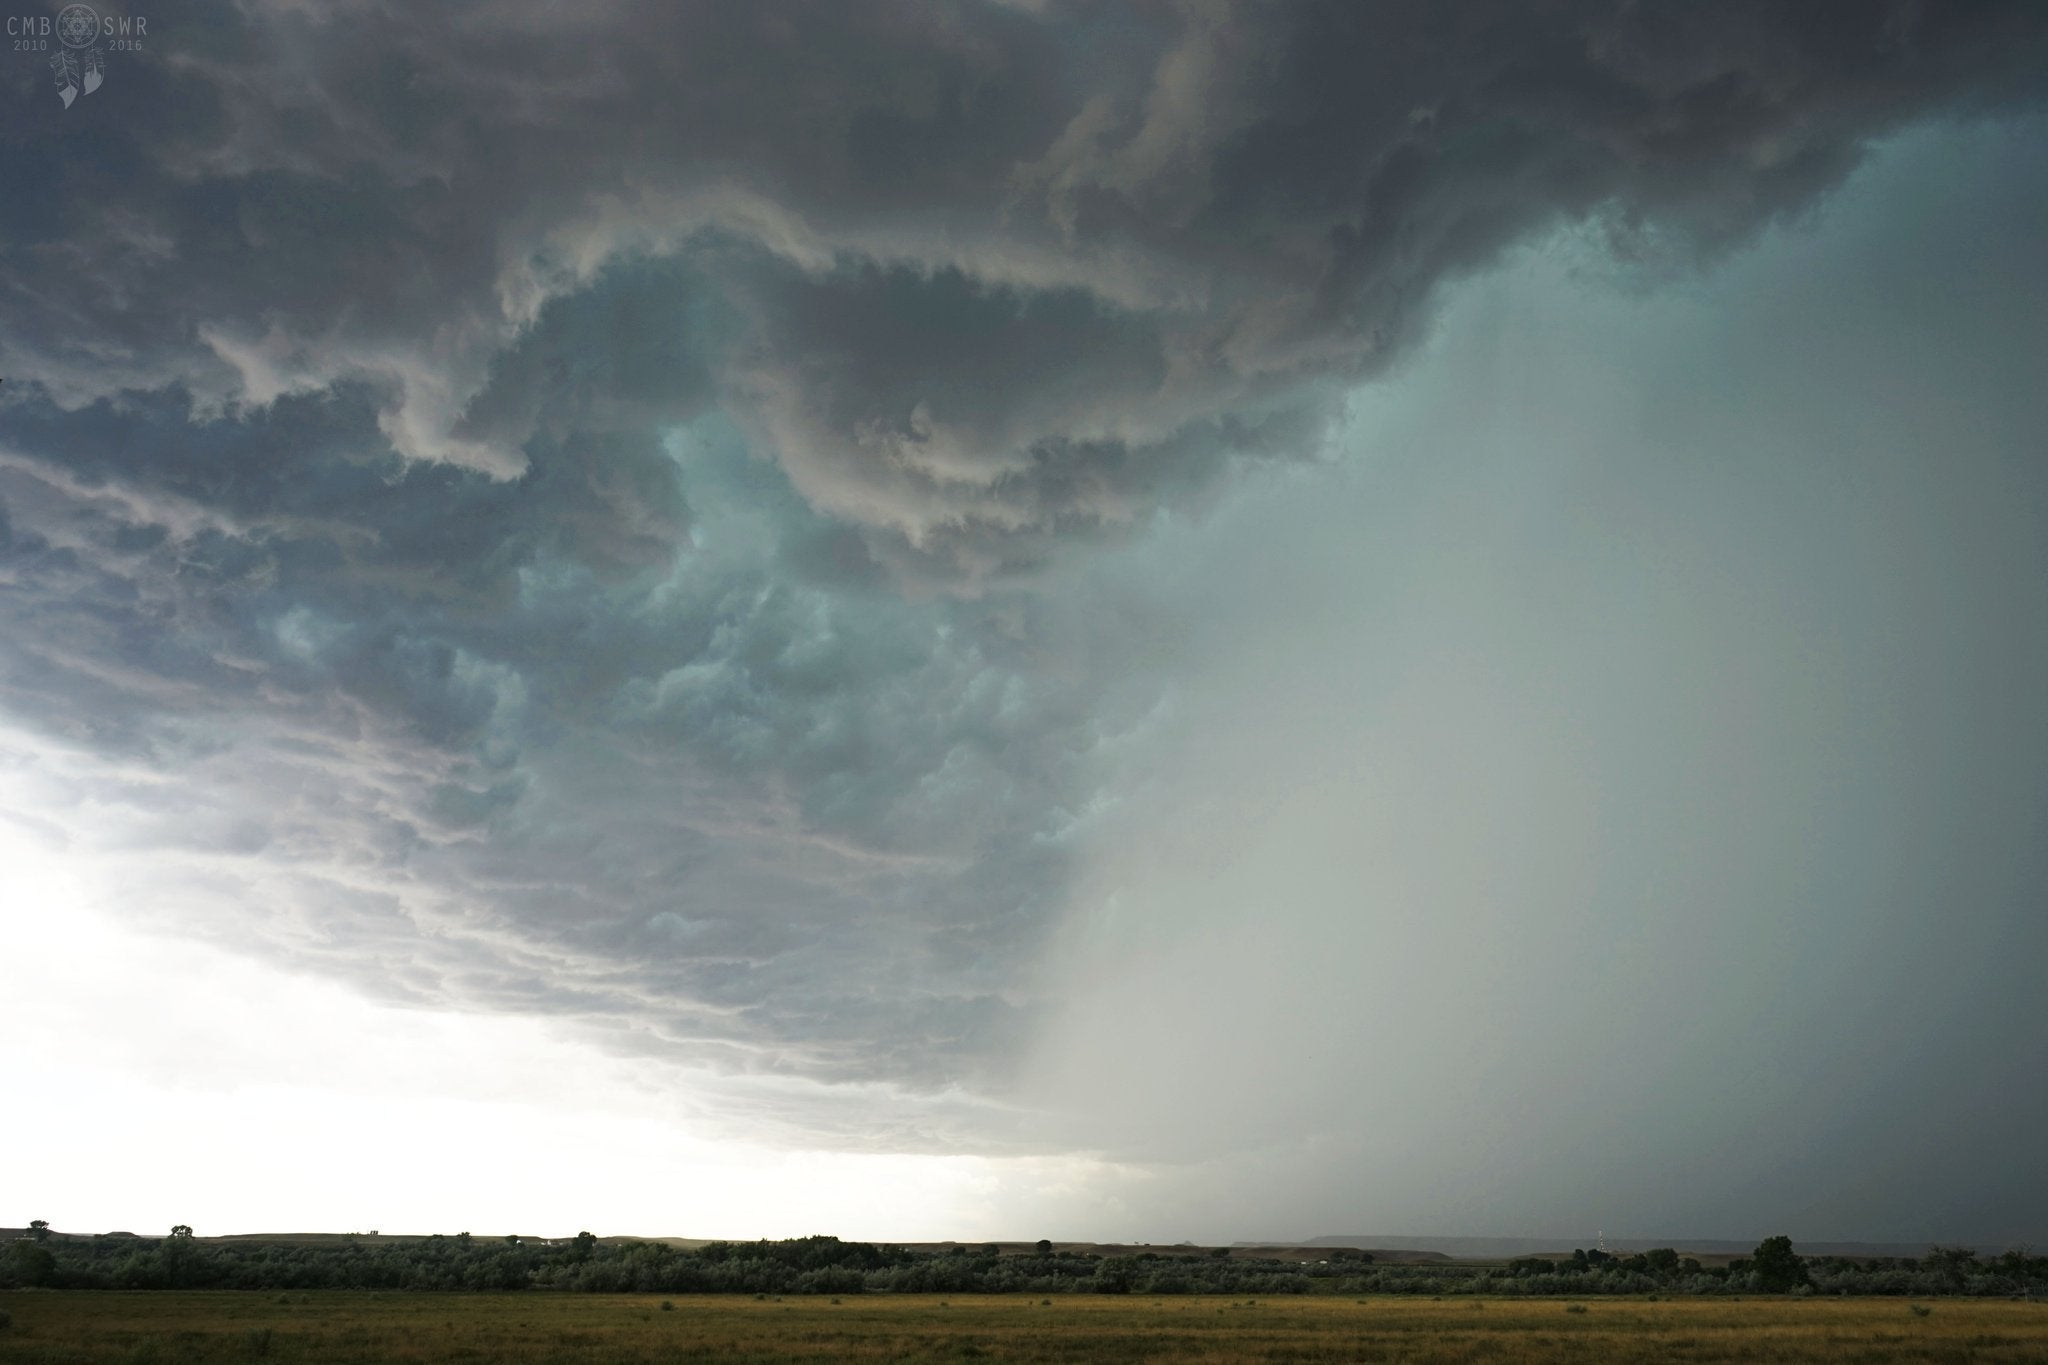 Clouds over Skinwalker Ranch, Utah, United States of America. Photographer: Chris Bartel